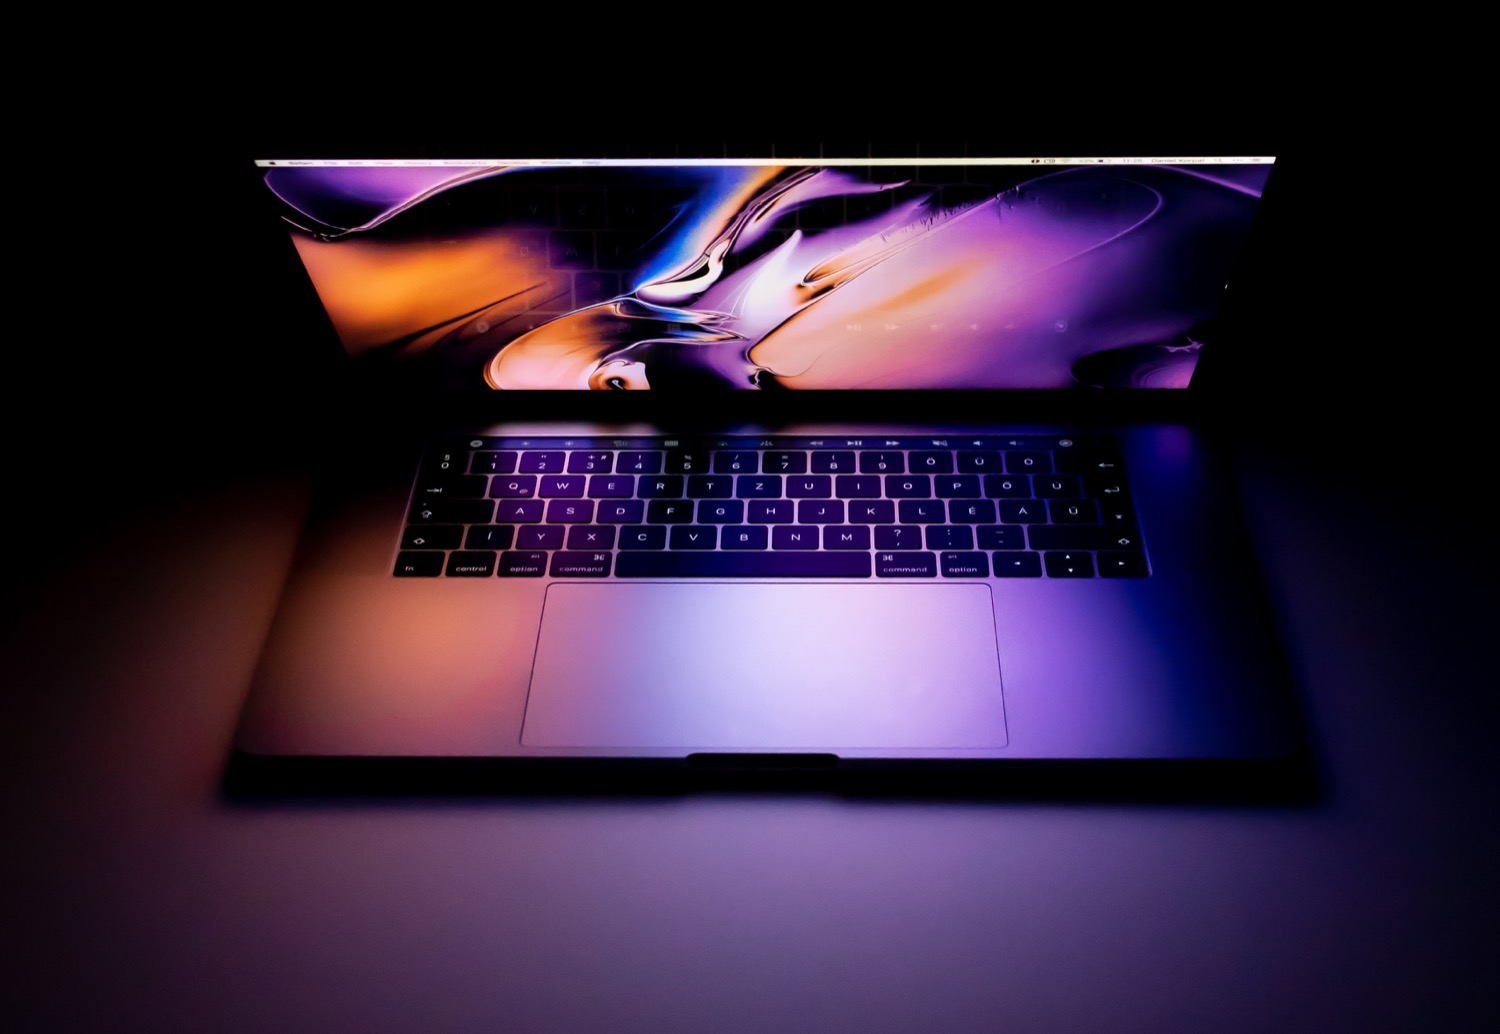 Hueblog: Using the official Philips Hue app on the Mac